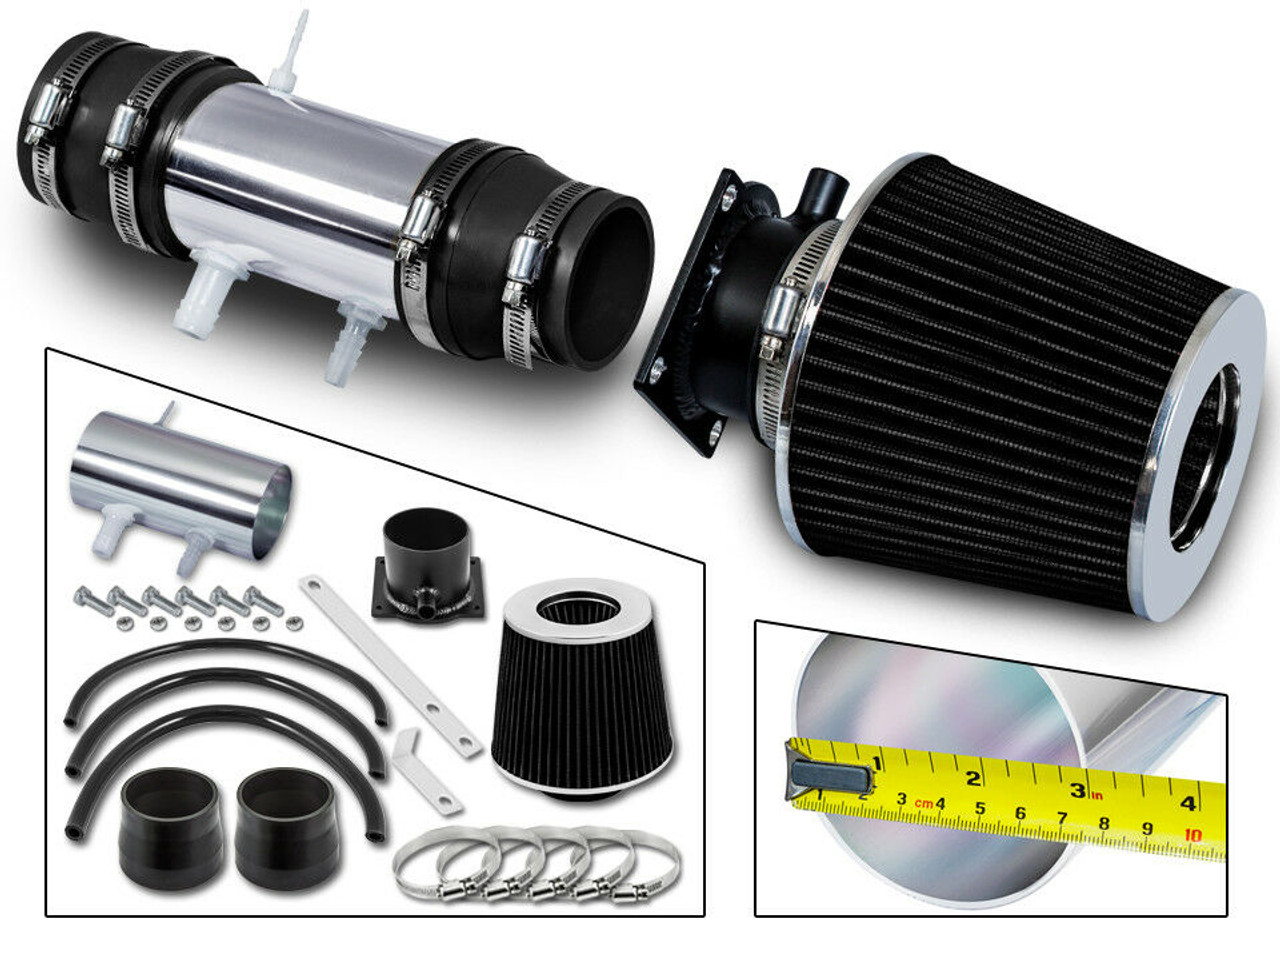 fit 1995-1999 NISSAN MAXIMA 3.0L V6 COLD AIR INTAKE KIT SYSTEMS